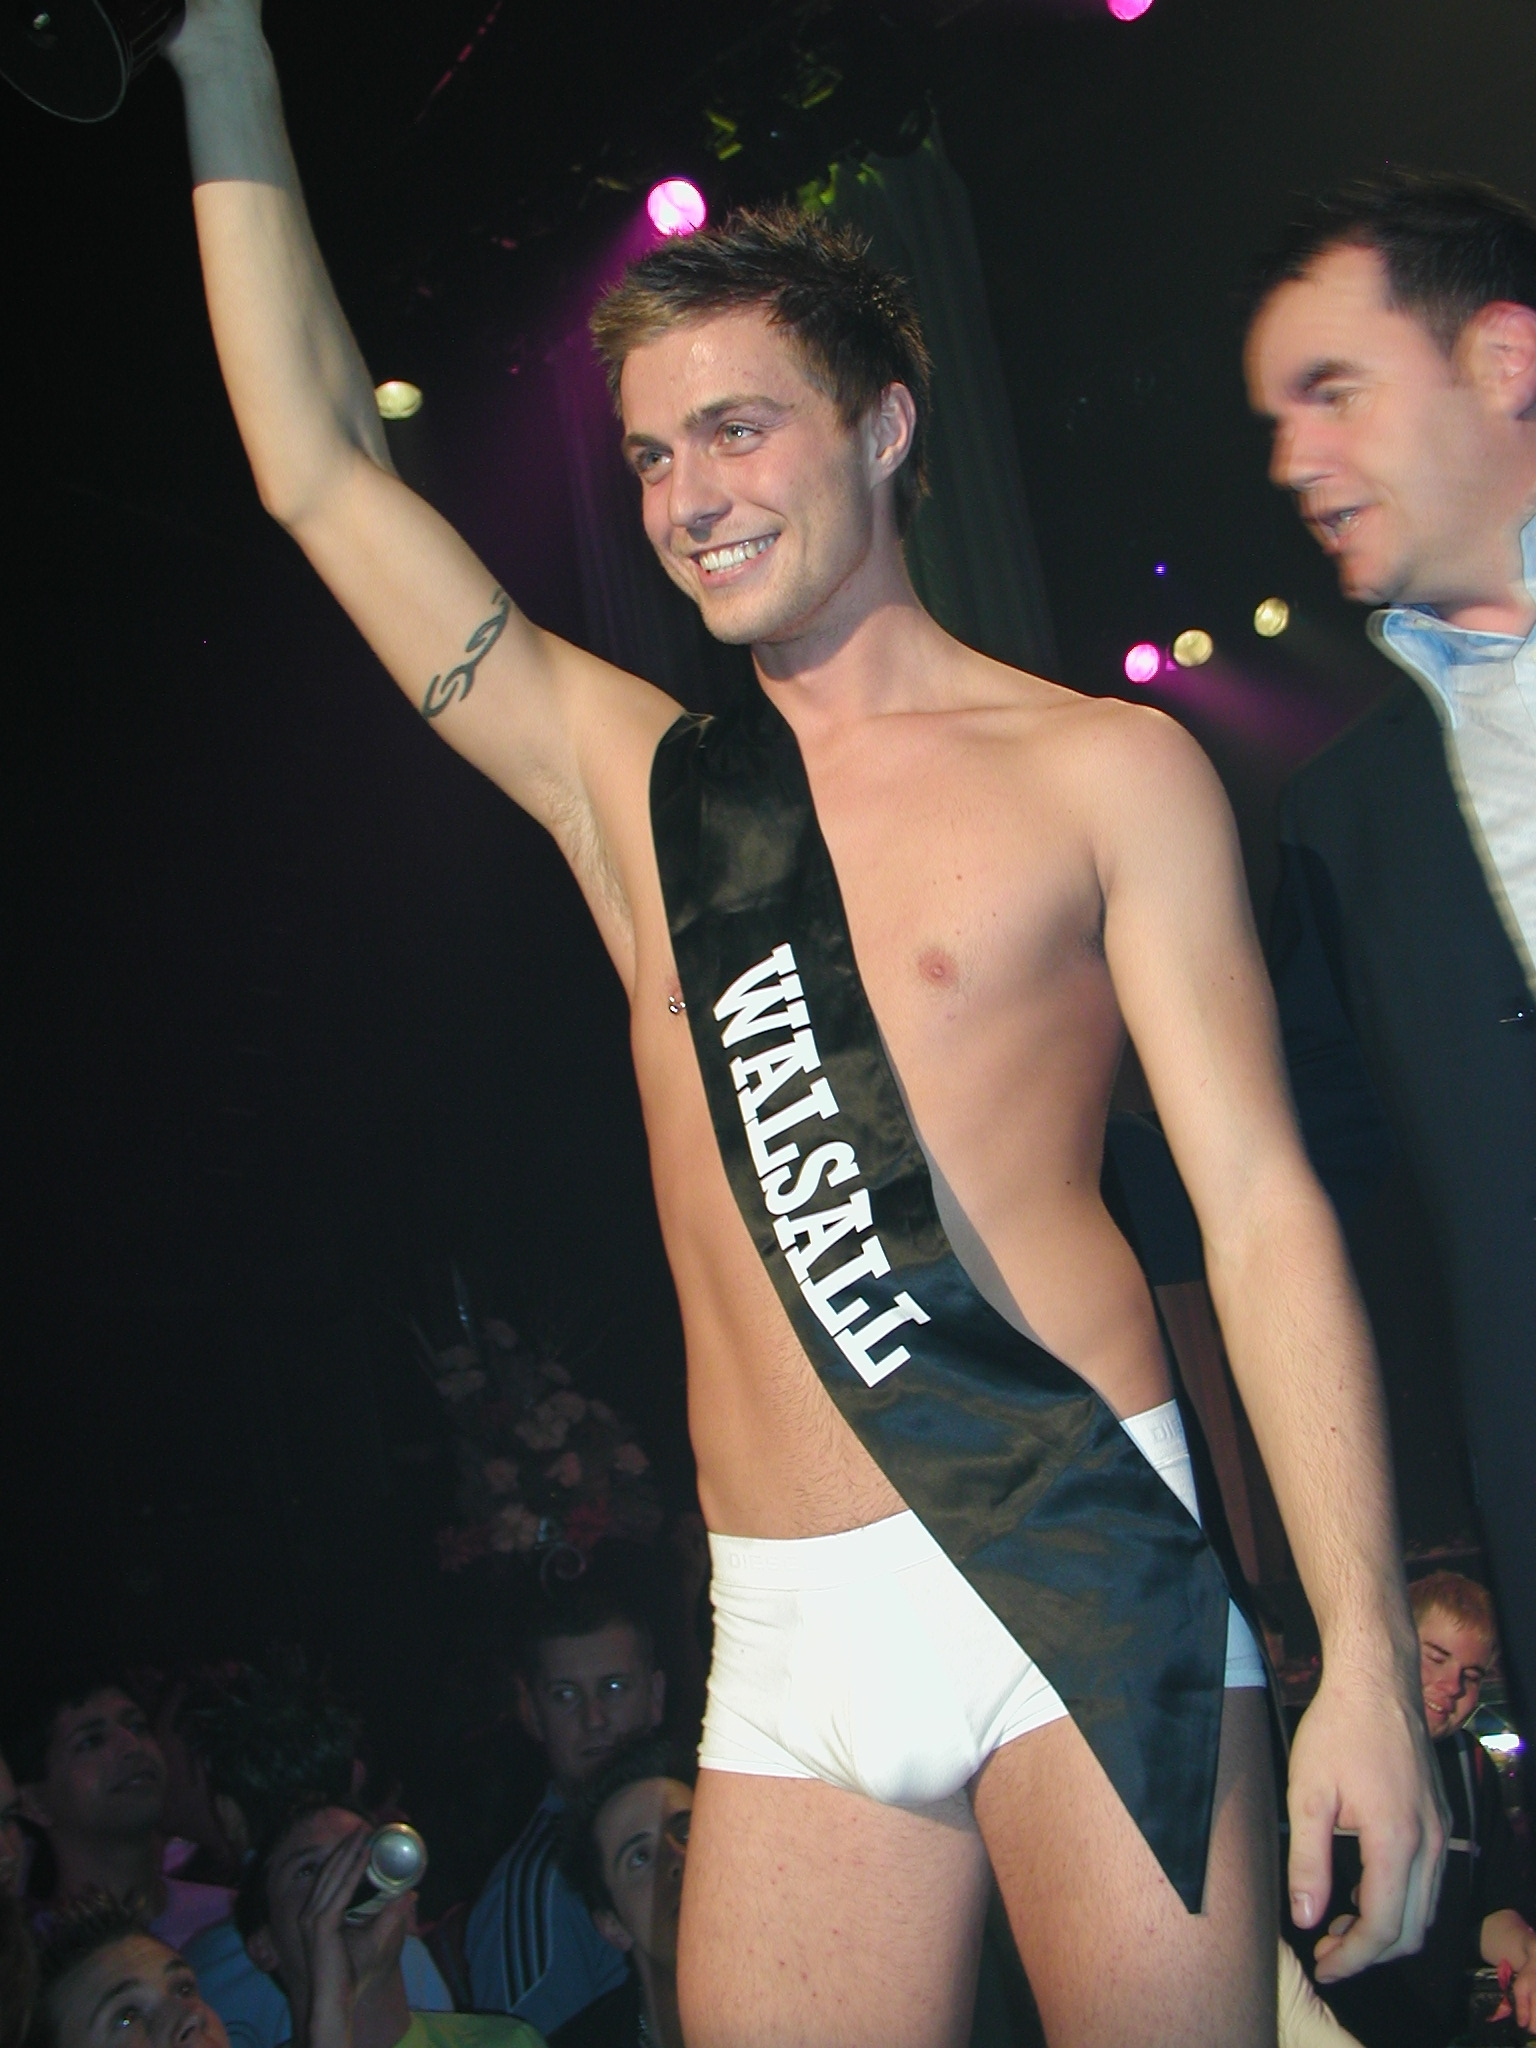 from Joey mark roberts mr gay uk 2004